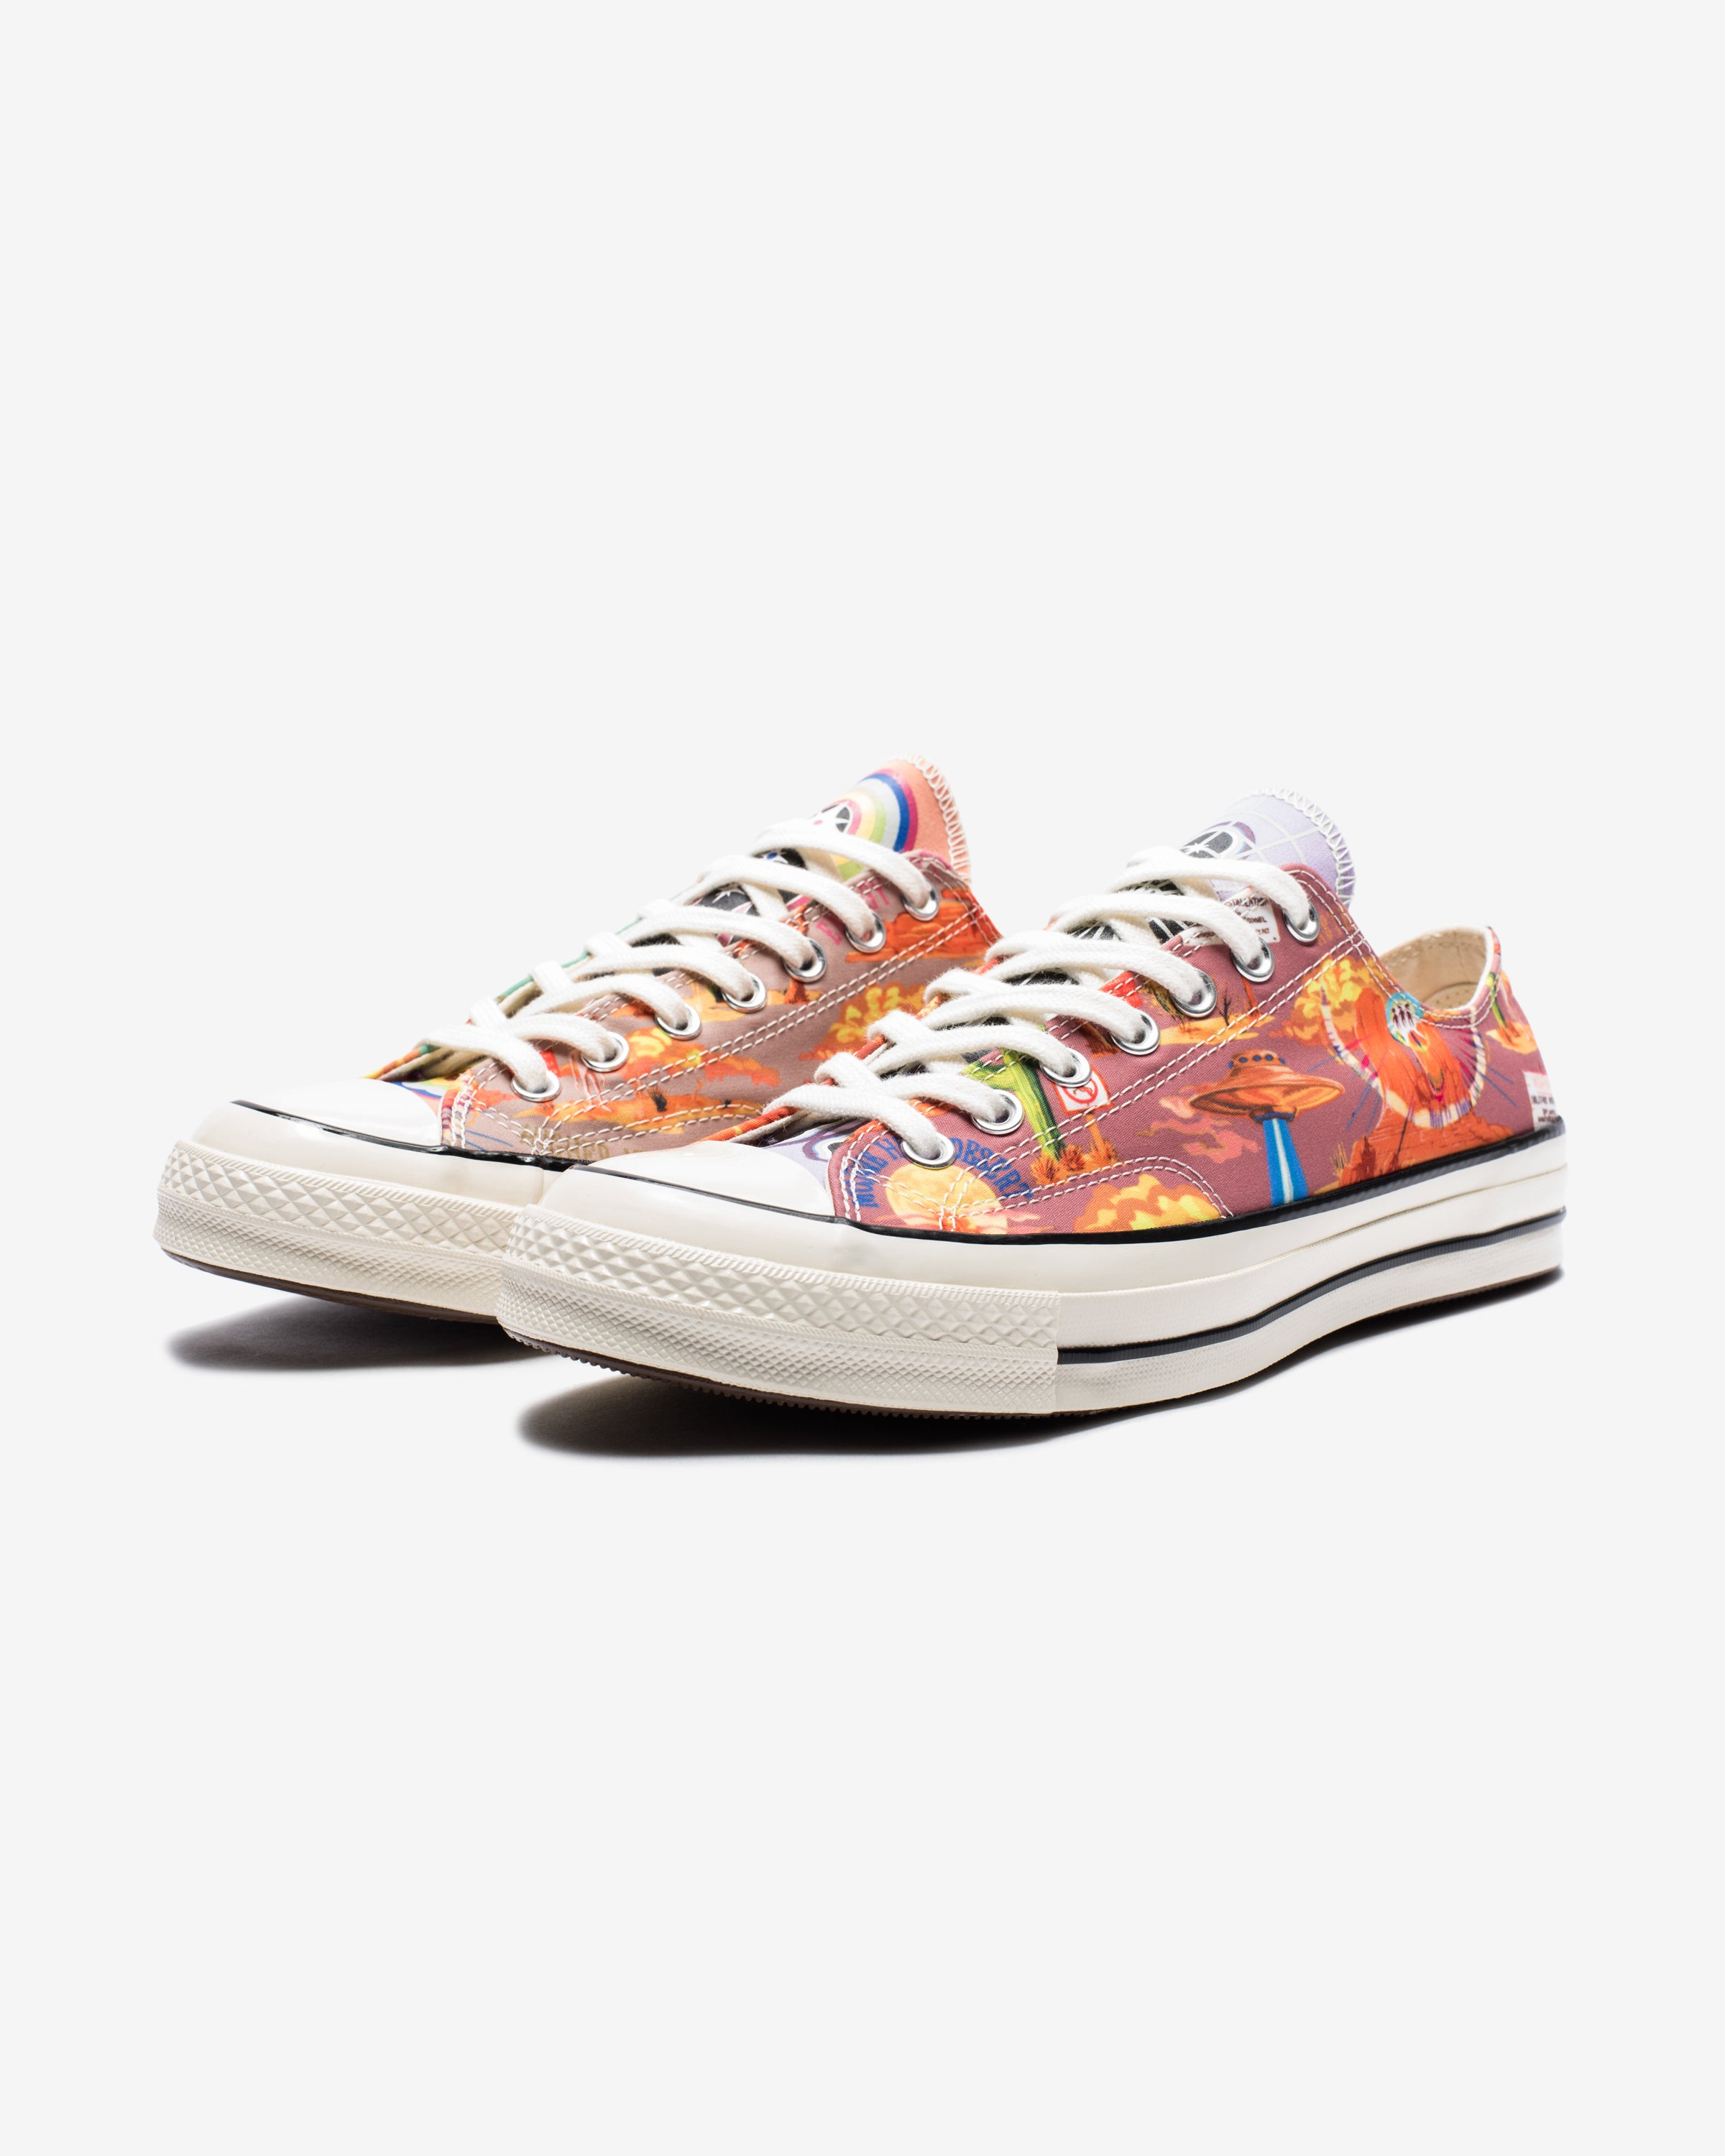 CONVERSE X TWISTED RESORT CHUCK 70 OX - EGRET/ MULTI/ BLACK